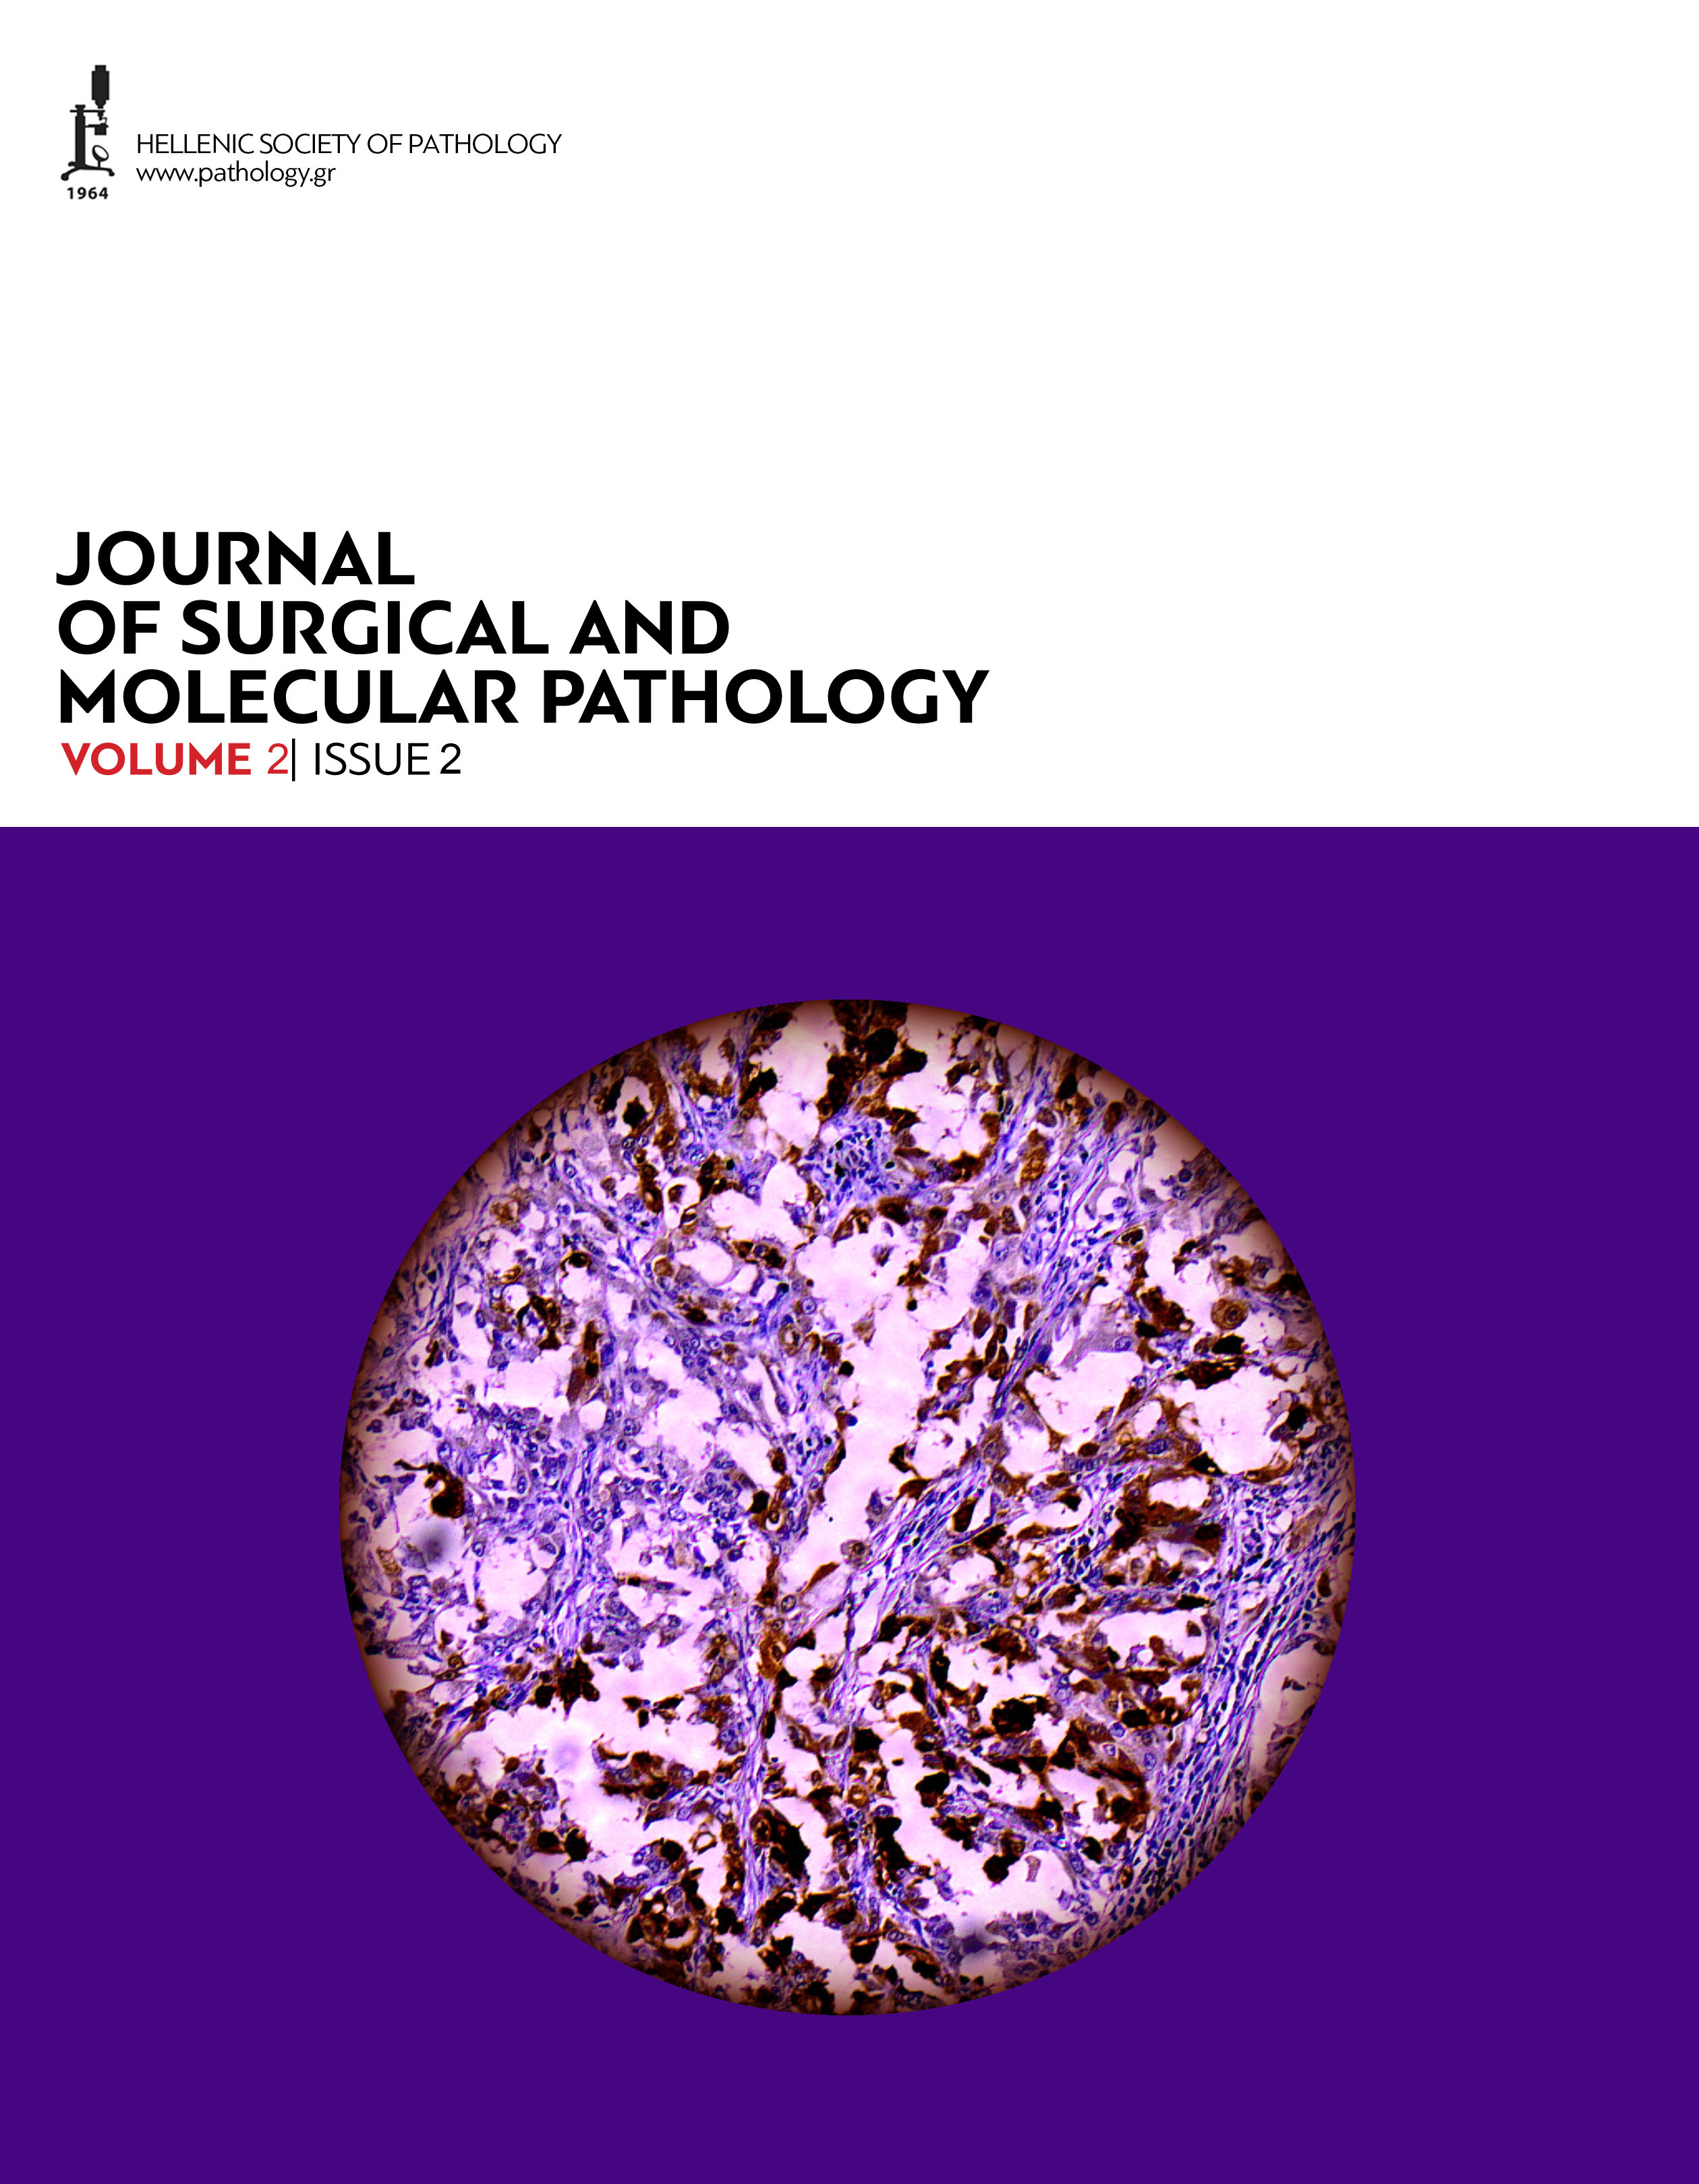 Journal of Surgical and Molecular Pathology, Volume 2, Issue 2 (2016)